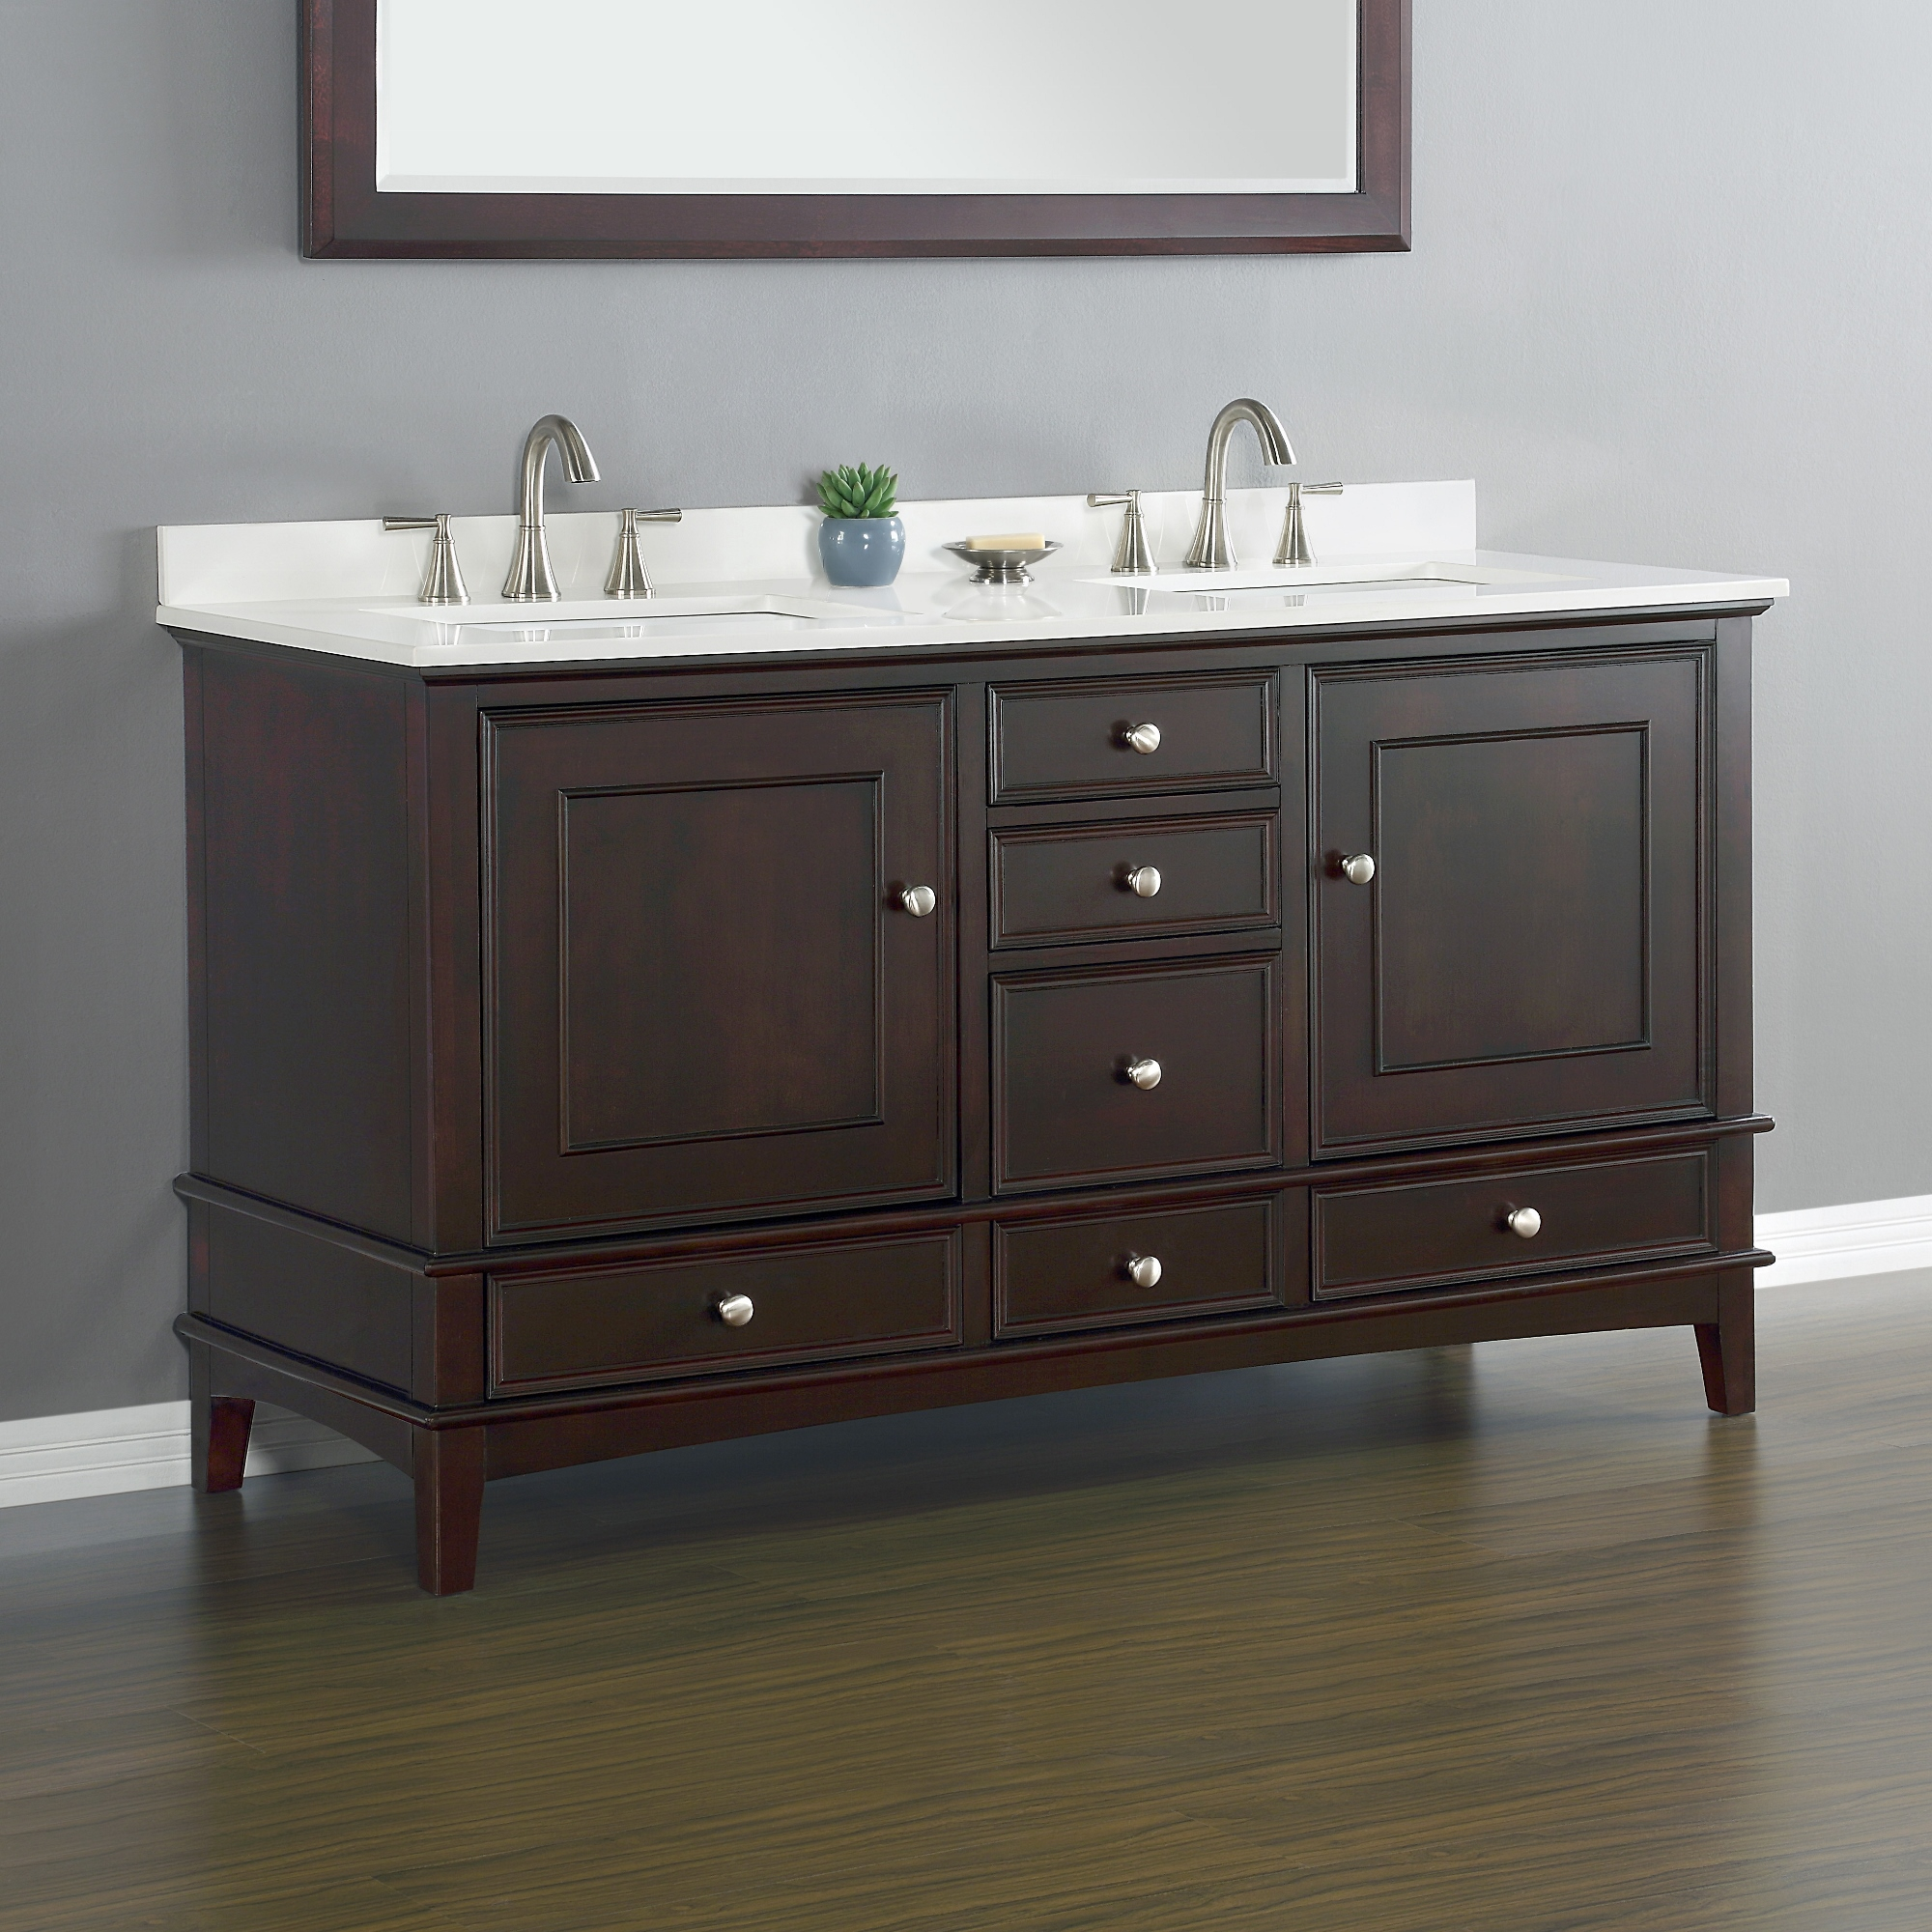 photo design bathroom cheap bathrooms sink for bug vanities double under mirrors vanity lowes graphics